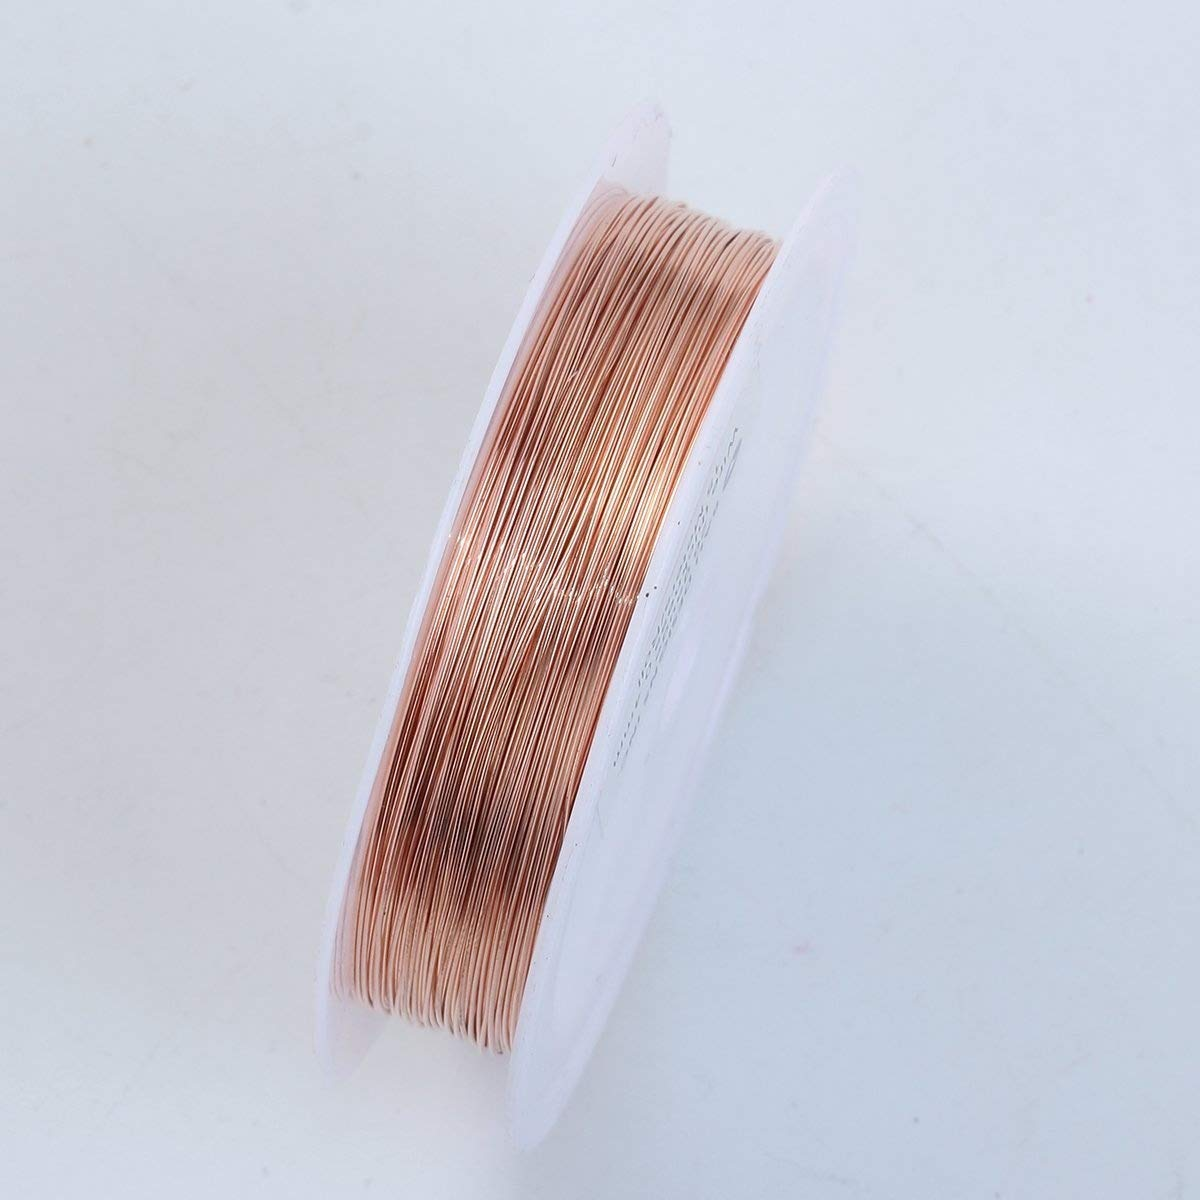 Rose Gold Color Wire 26 Gauge,Thickness 0.4MM WRG-101-26G